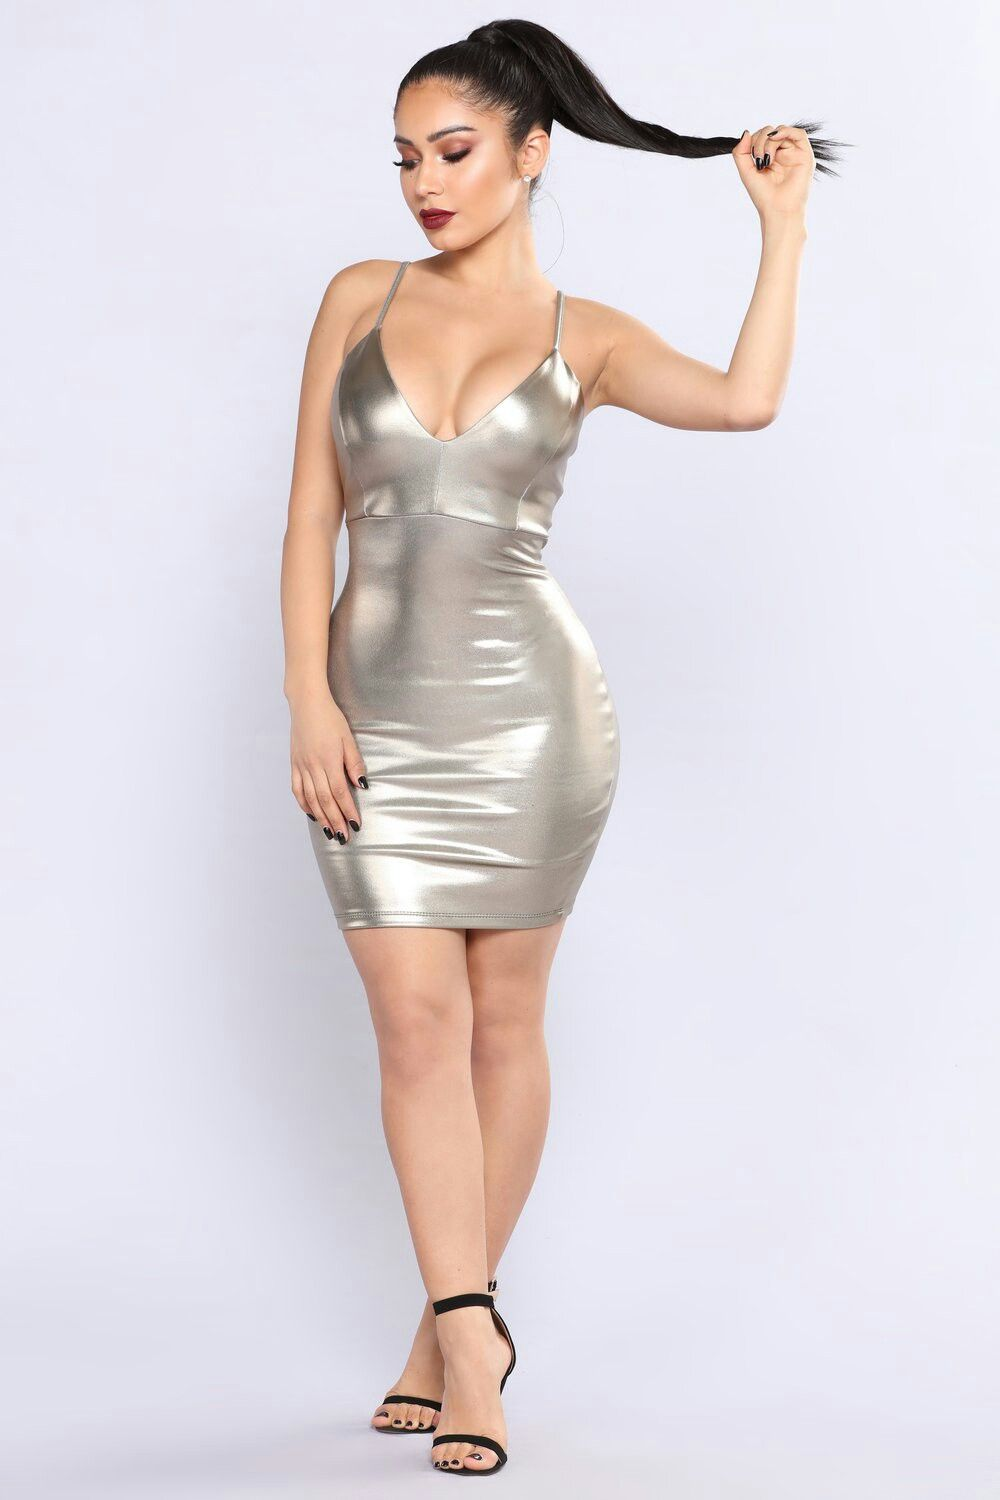 00cd5f5a41 Designer Plus Size Clothing, Sexy Dresses, Stylish Dresses, Tight Dresses,  Nice Dresses